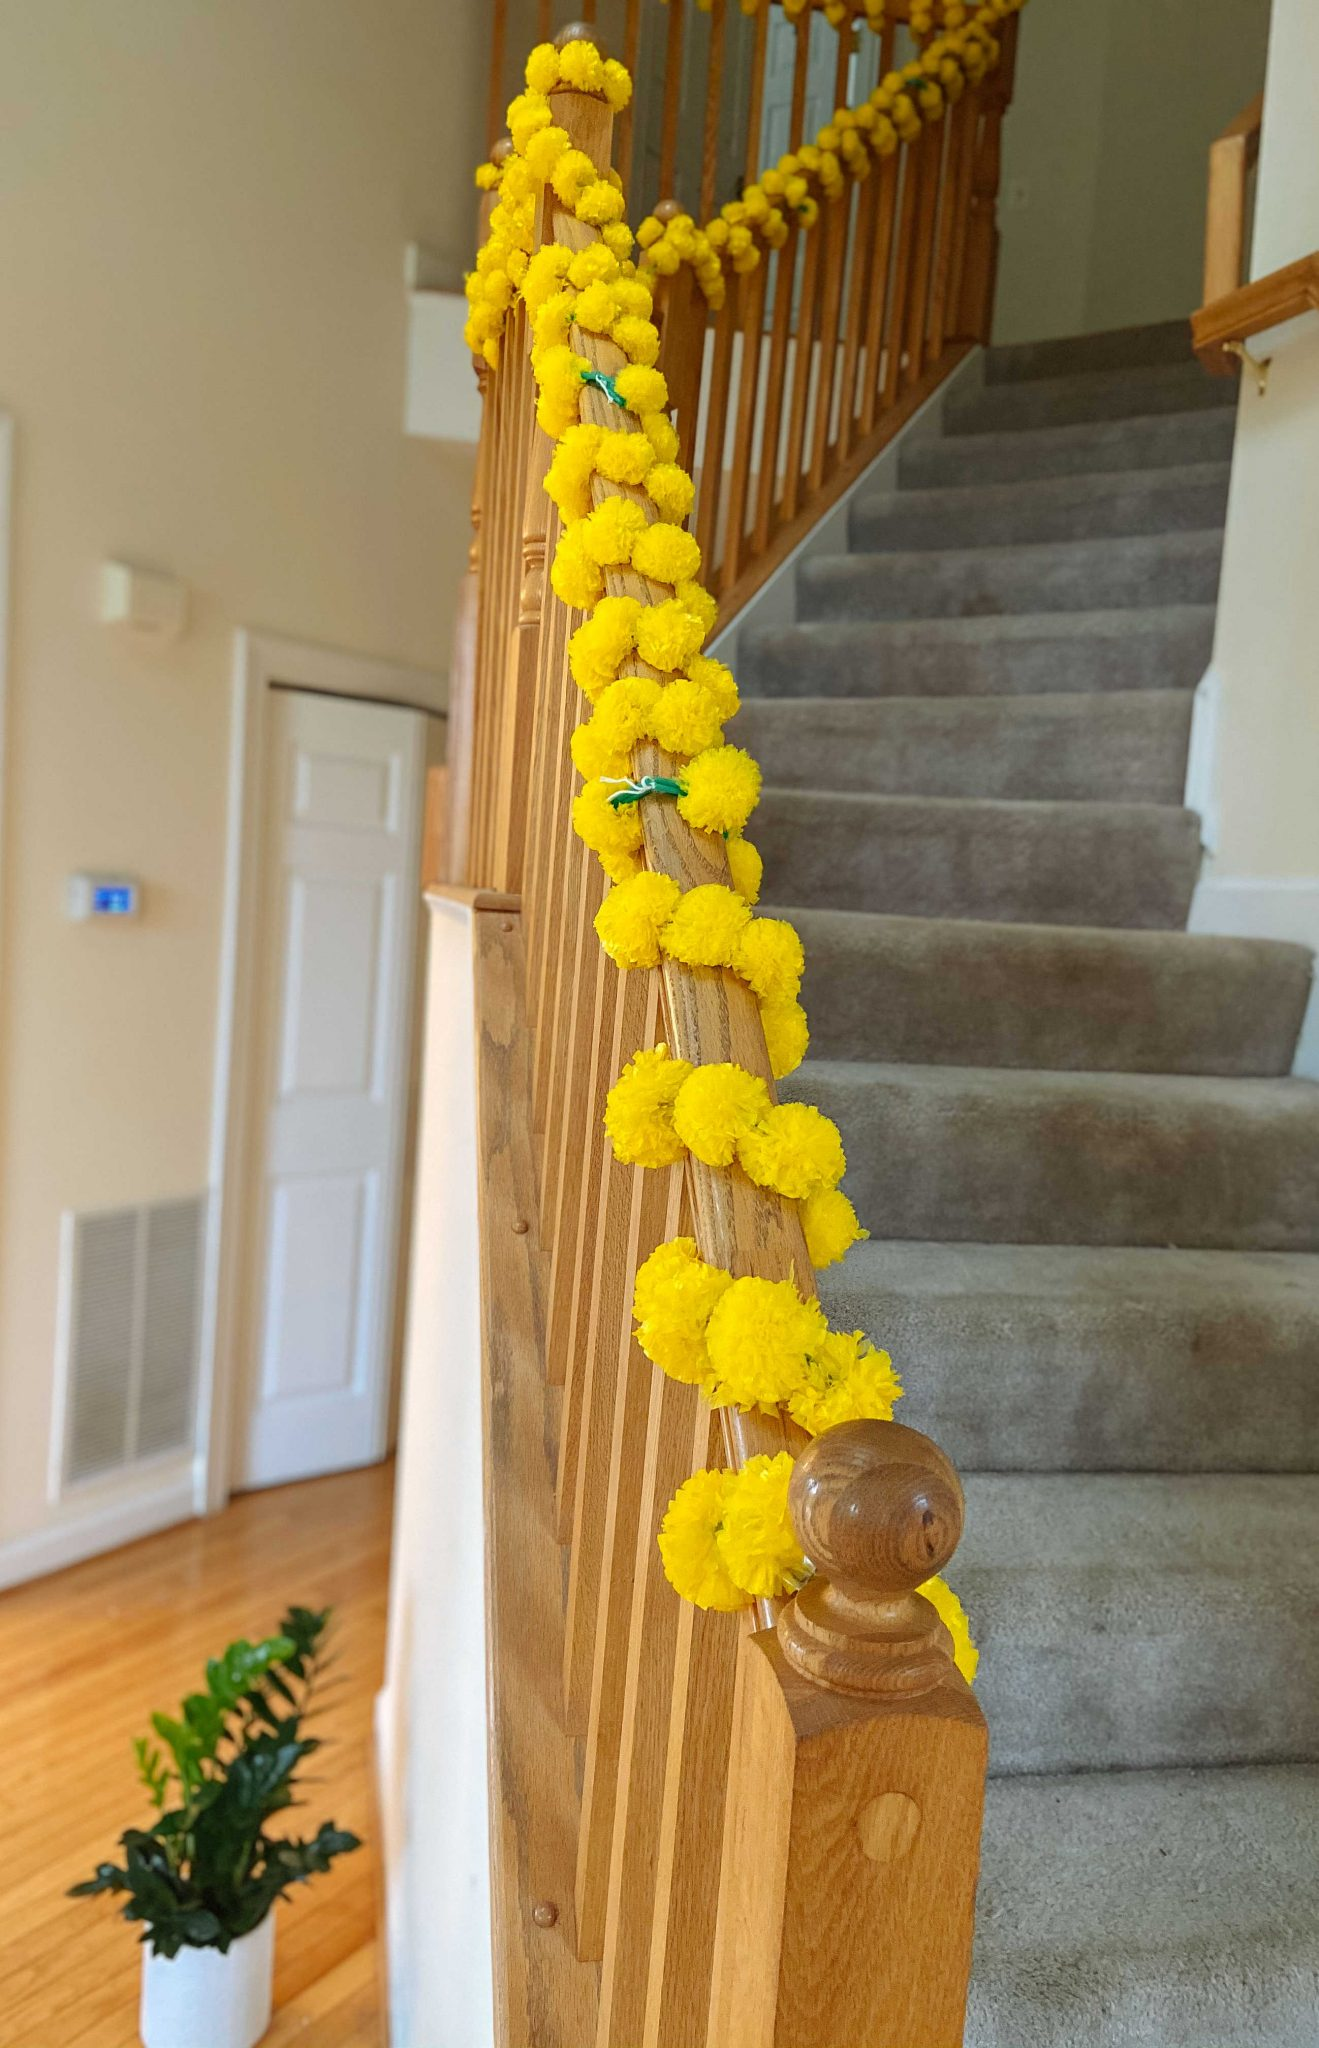 Simple Diwali Decoration ideas featured by top MD lifestyle blogger, Dreaming Loud: Staircase Diwali Decoration | Diwali Decoration Ideas: image of a fireplace decorated with a yellow marigold garland.